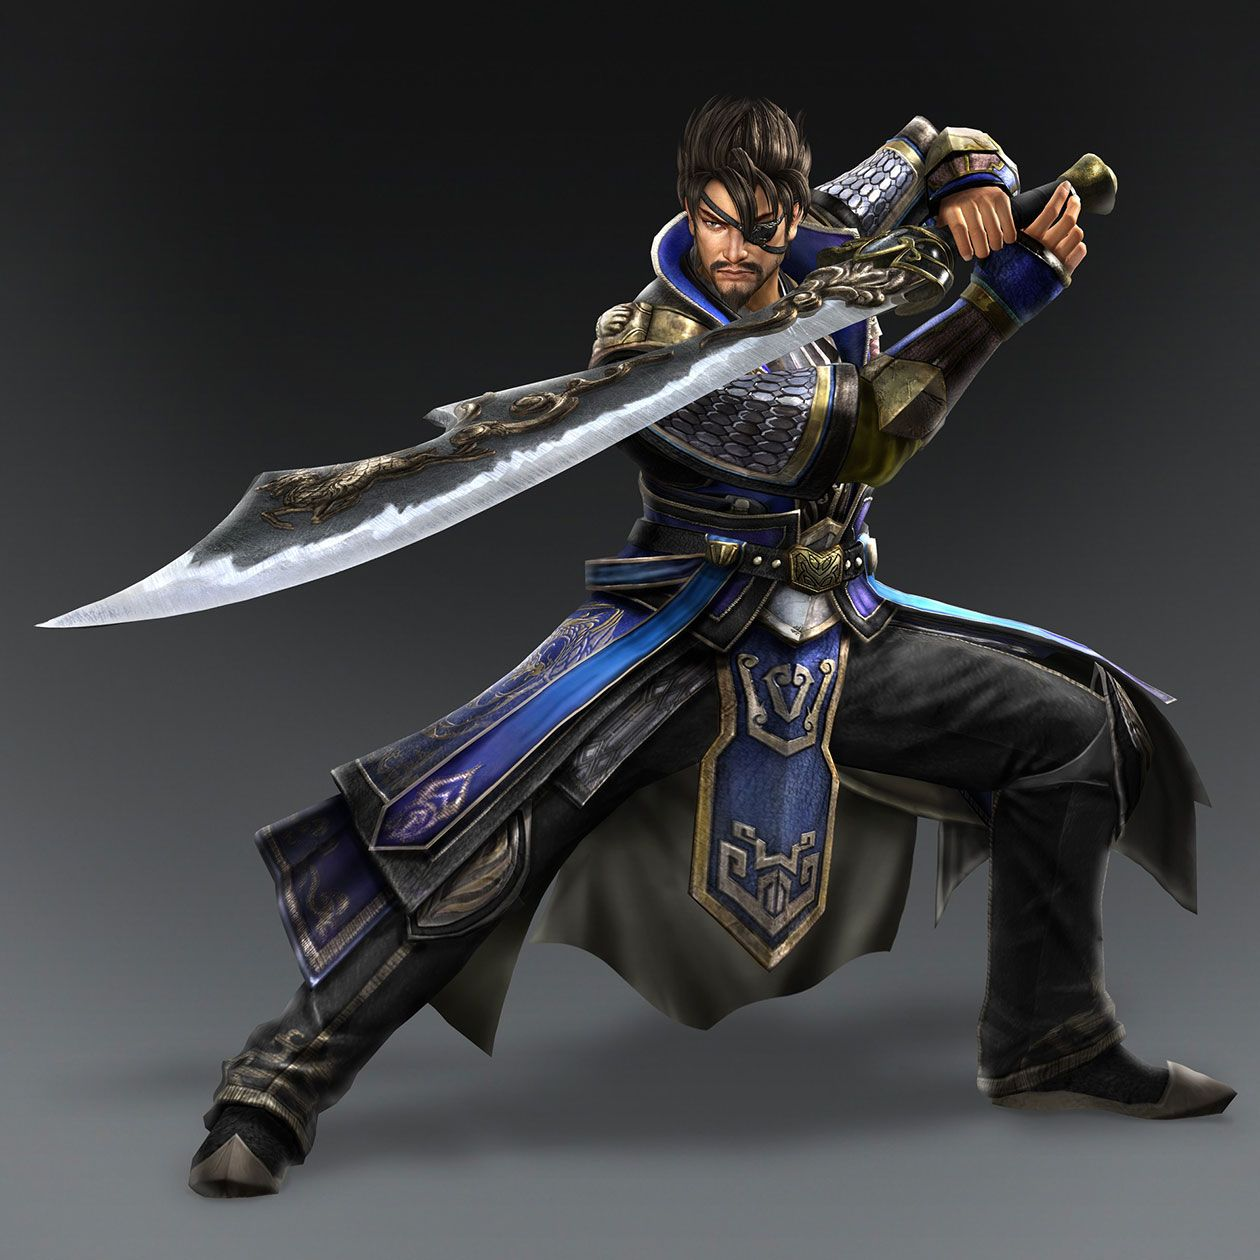 Warriors Orochi 3 Ultimate Mystic Weapons Difficulty: Xiahou Dun Weapon